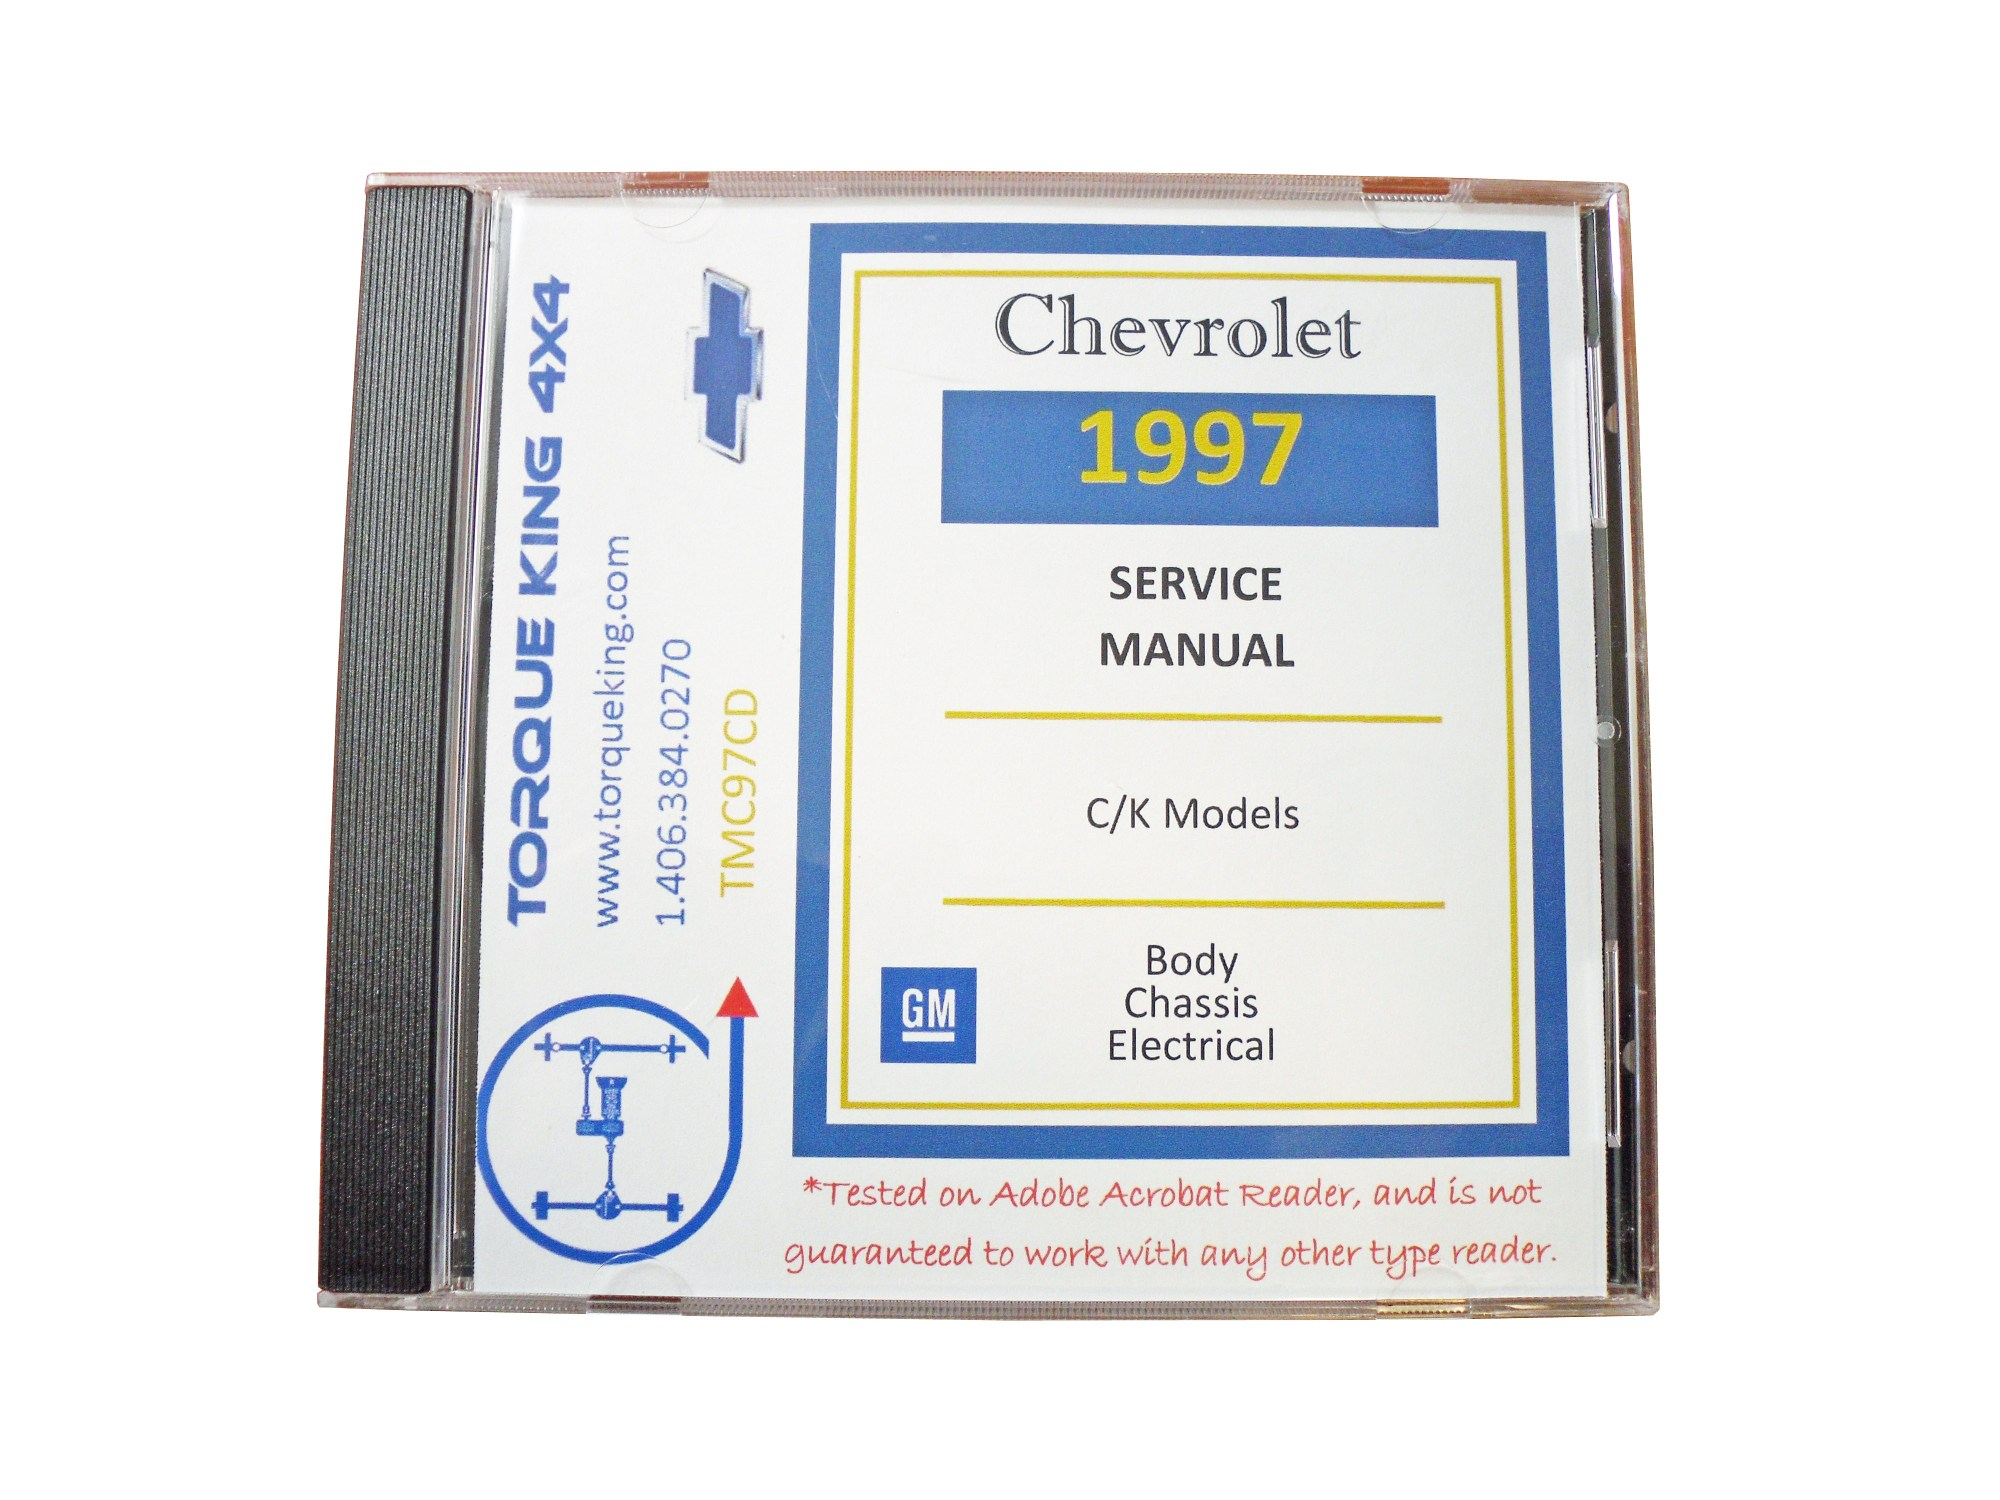 hight resolution of 1988 1999 gm factory c k truck service manuals on cd are your source for complete service maintenance and repair information for your 1988 1999 chevy or